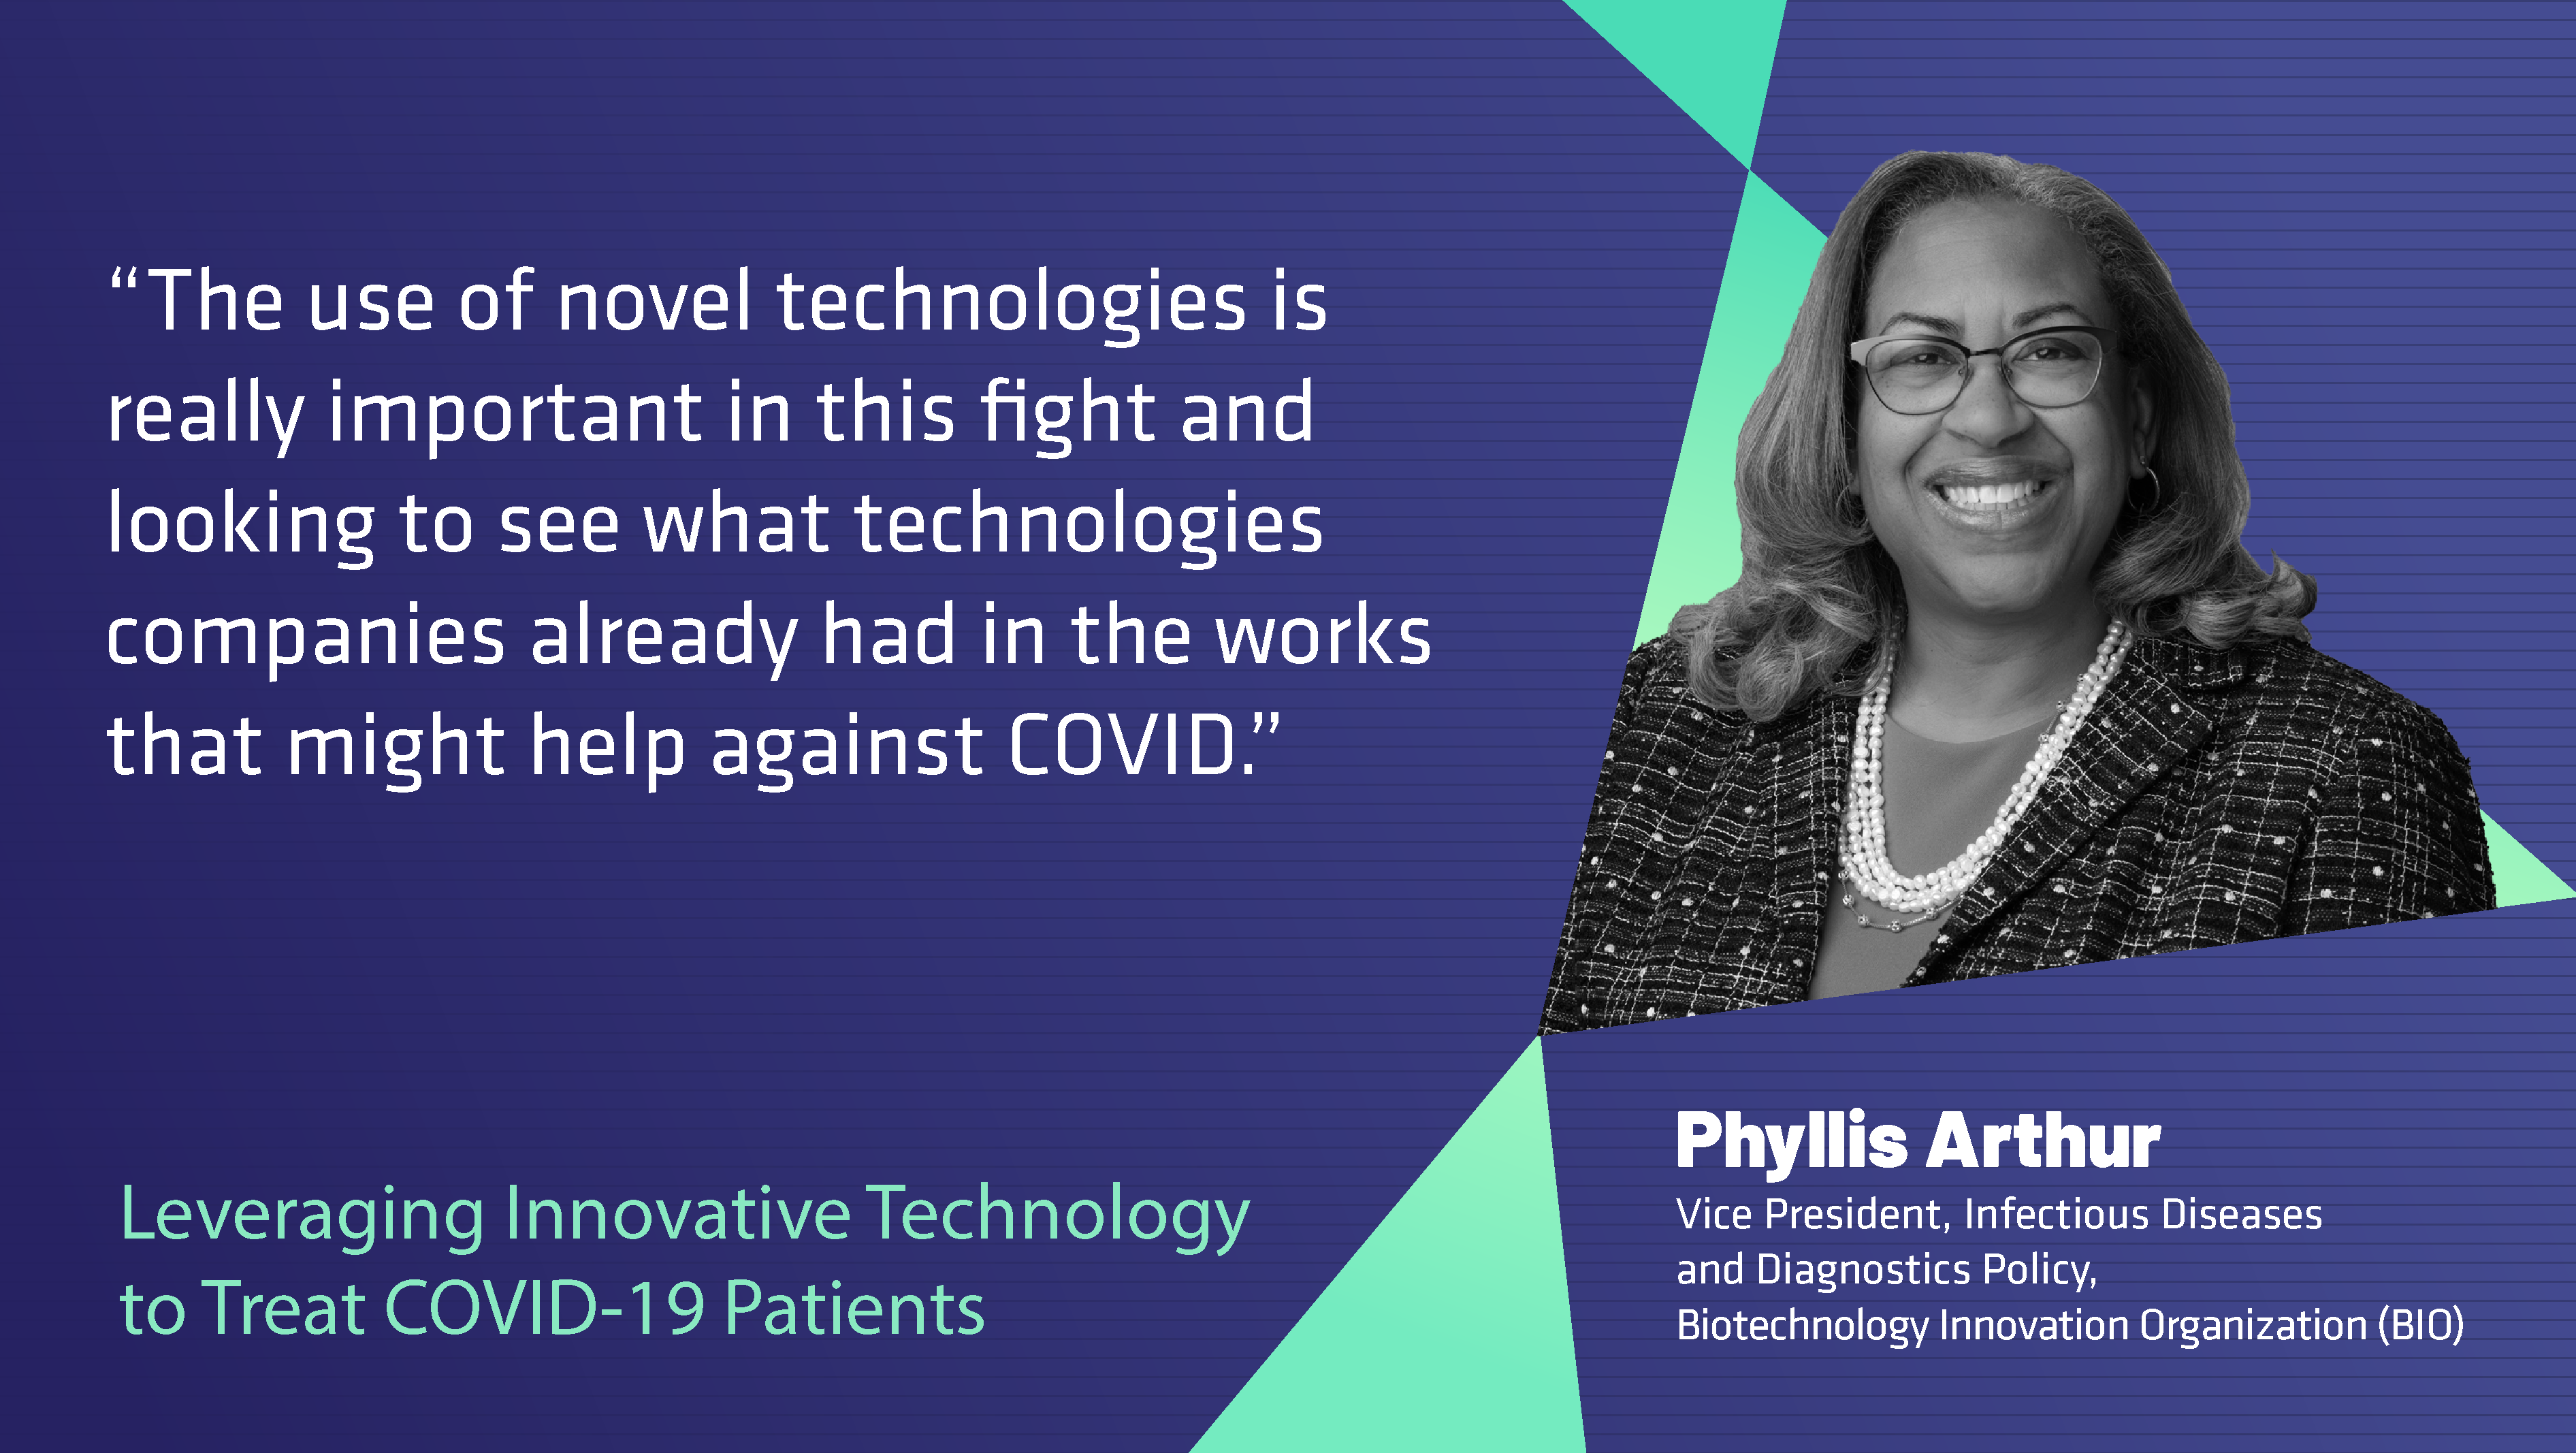 Leveraging Innovative Technology to Treat COVID-19 Patients